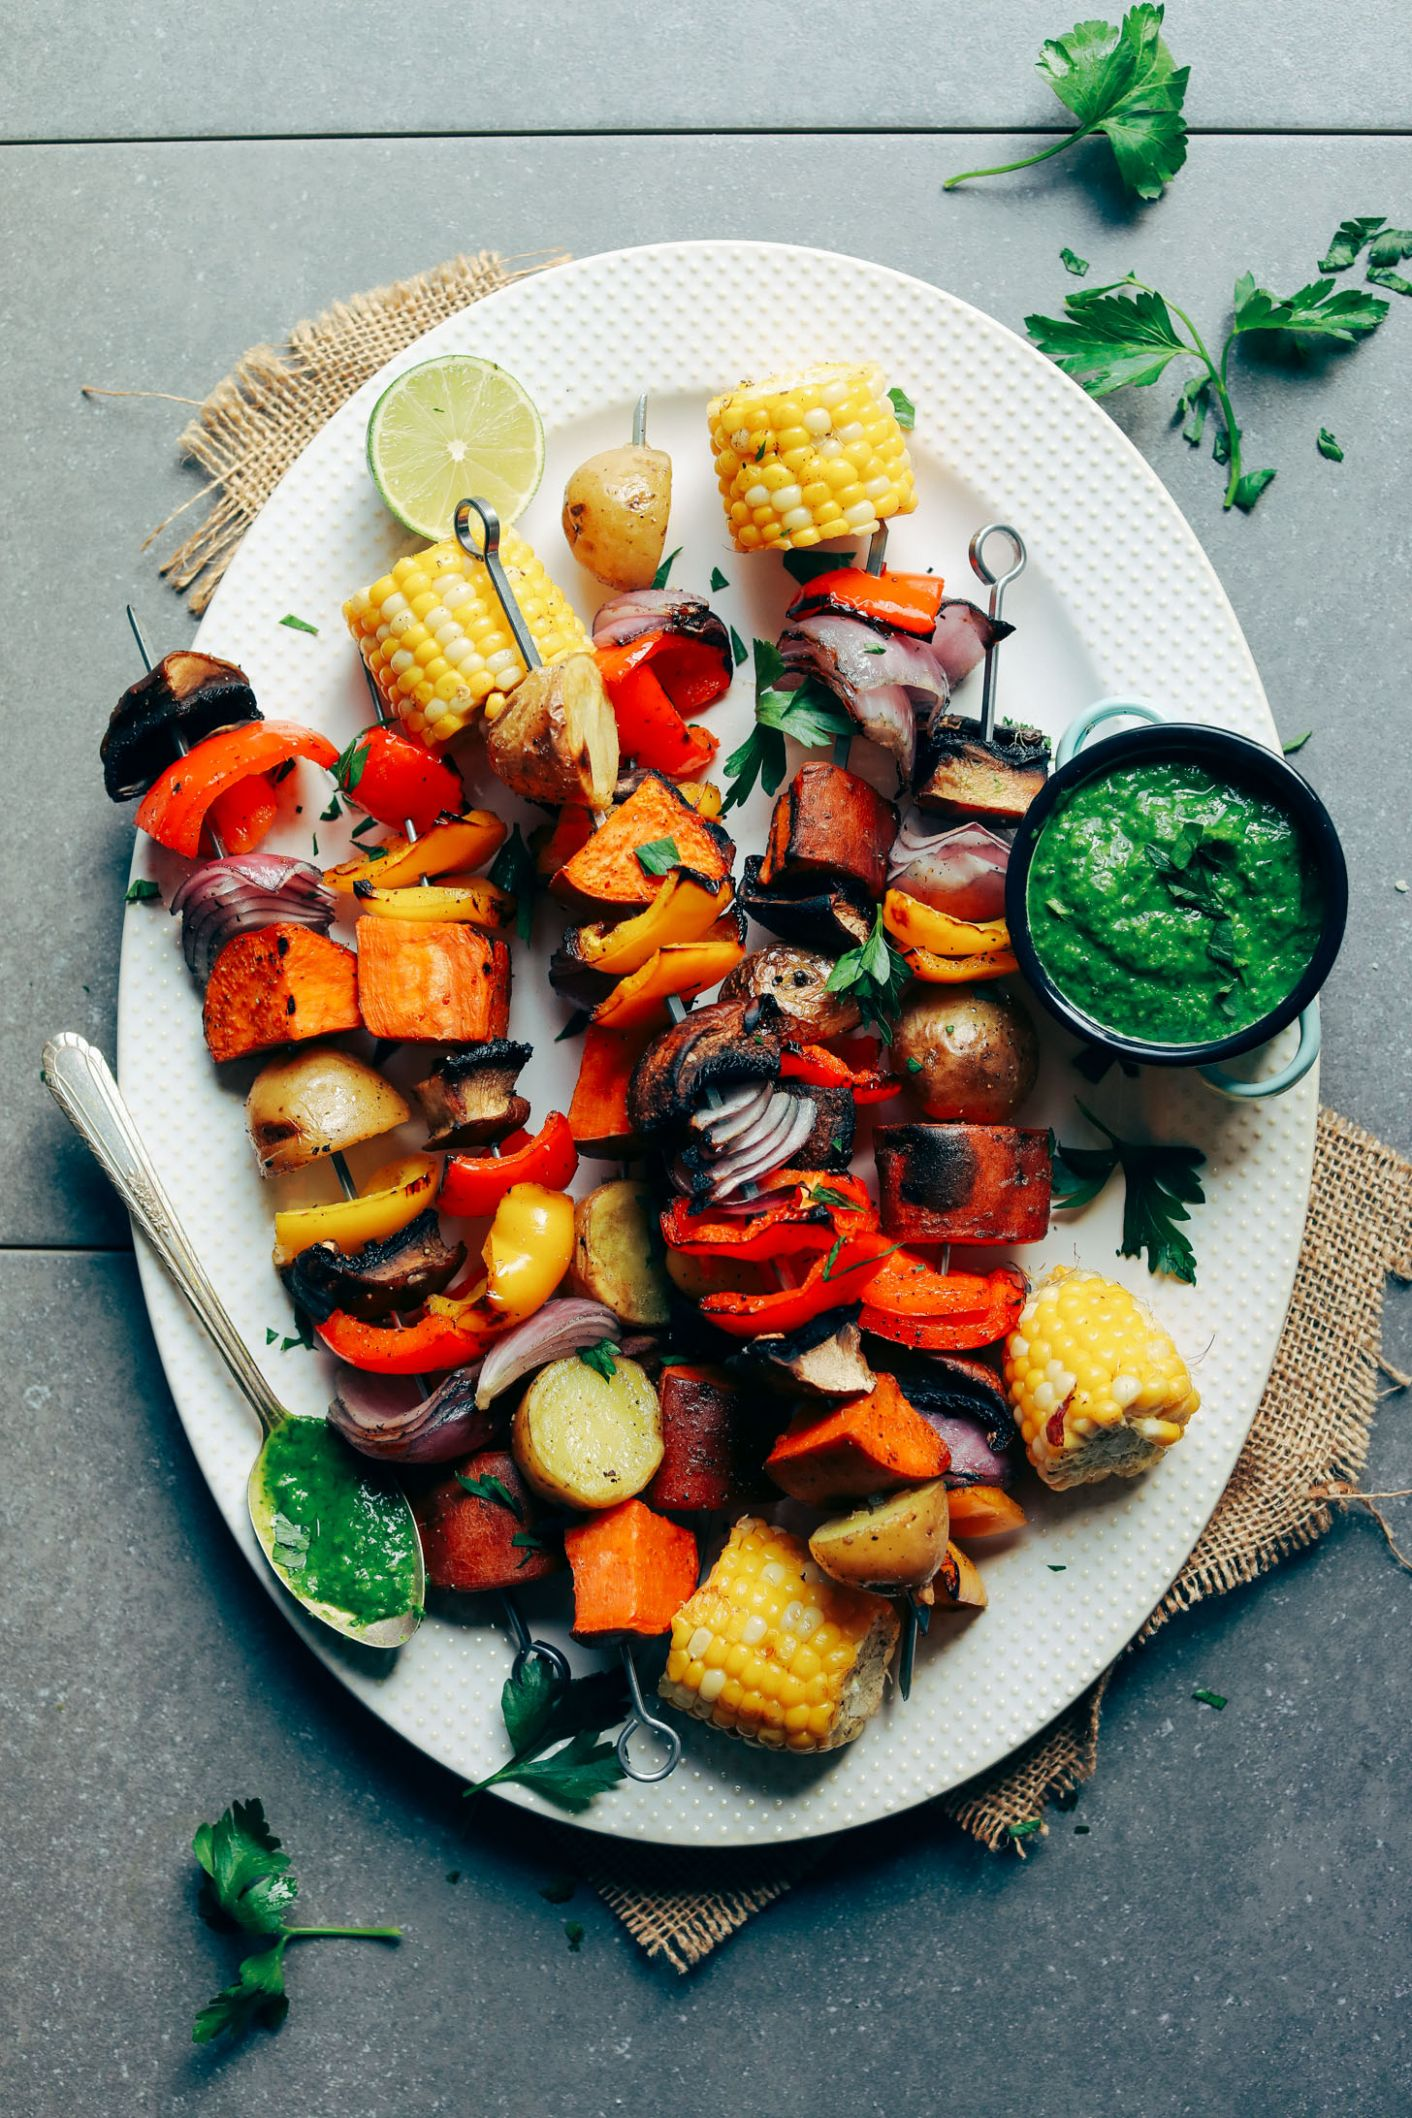 Veggie Skewers with Chimichurri Sauce - Vegetarian Recipes On The Grill